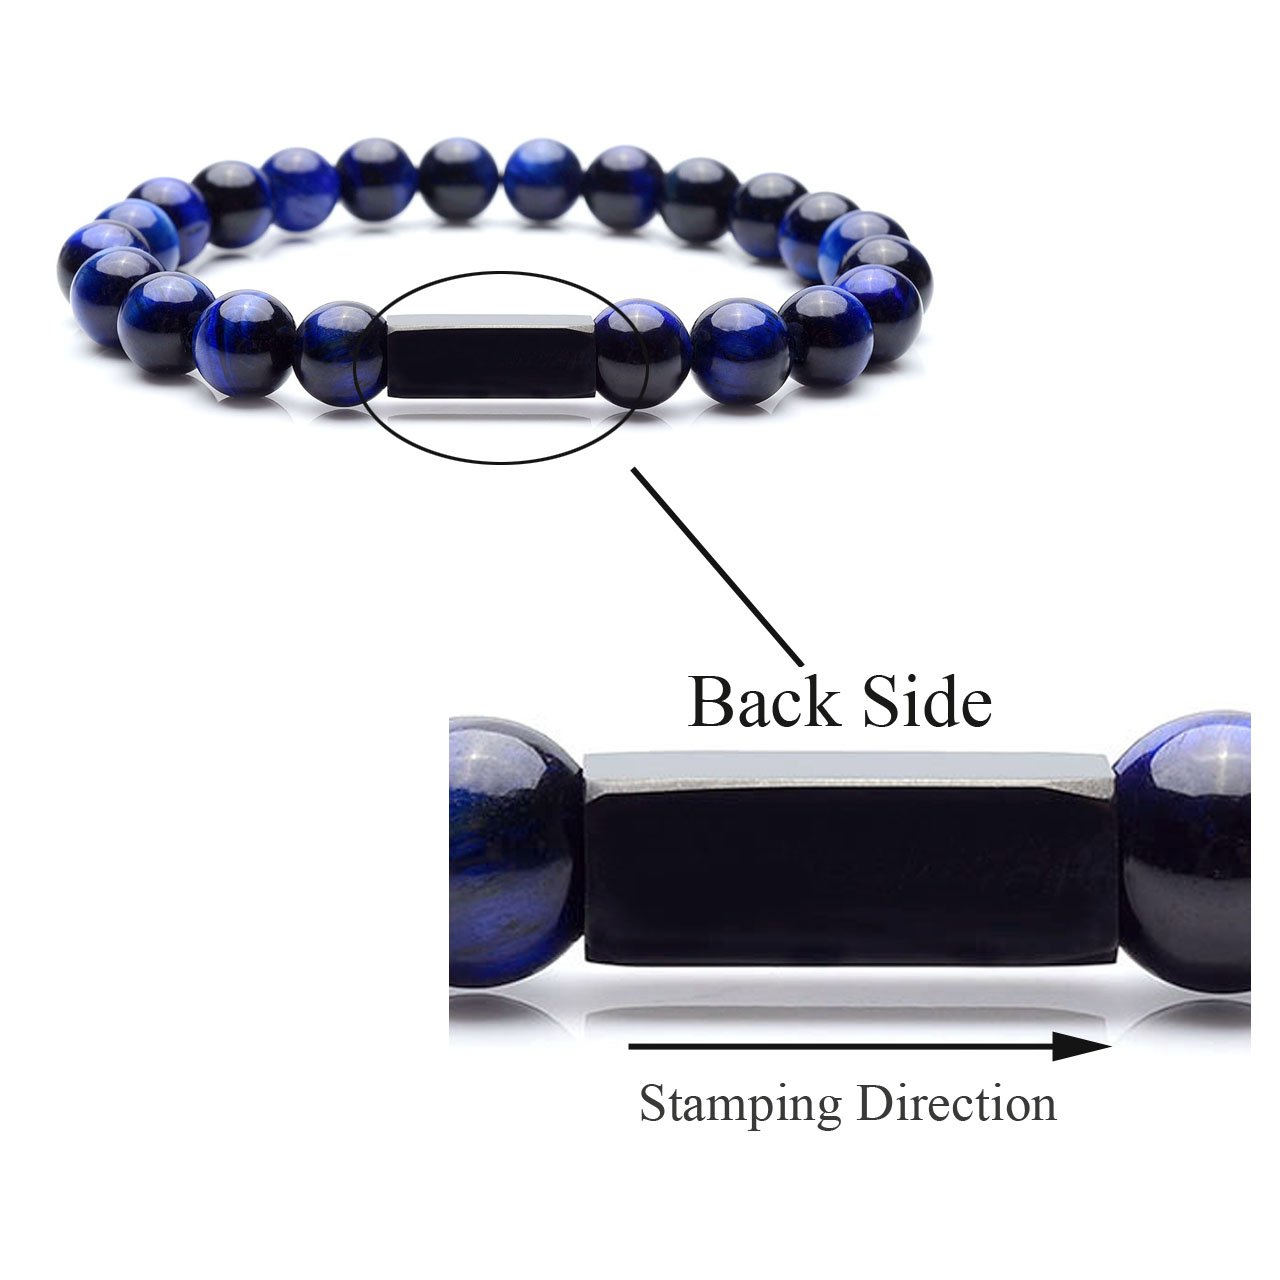 Personalized Master Free Engraving Custom Mens Womens Natural Gemstone Distance Bracelets Round Beads Healing Crystal Stretch Bracelet Set by Personalized Master (Image #5)